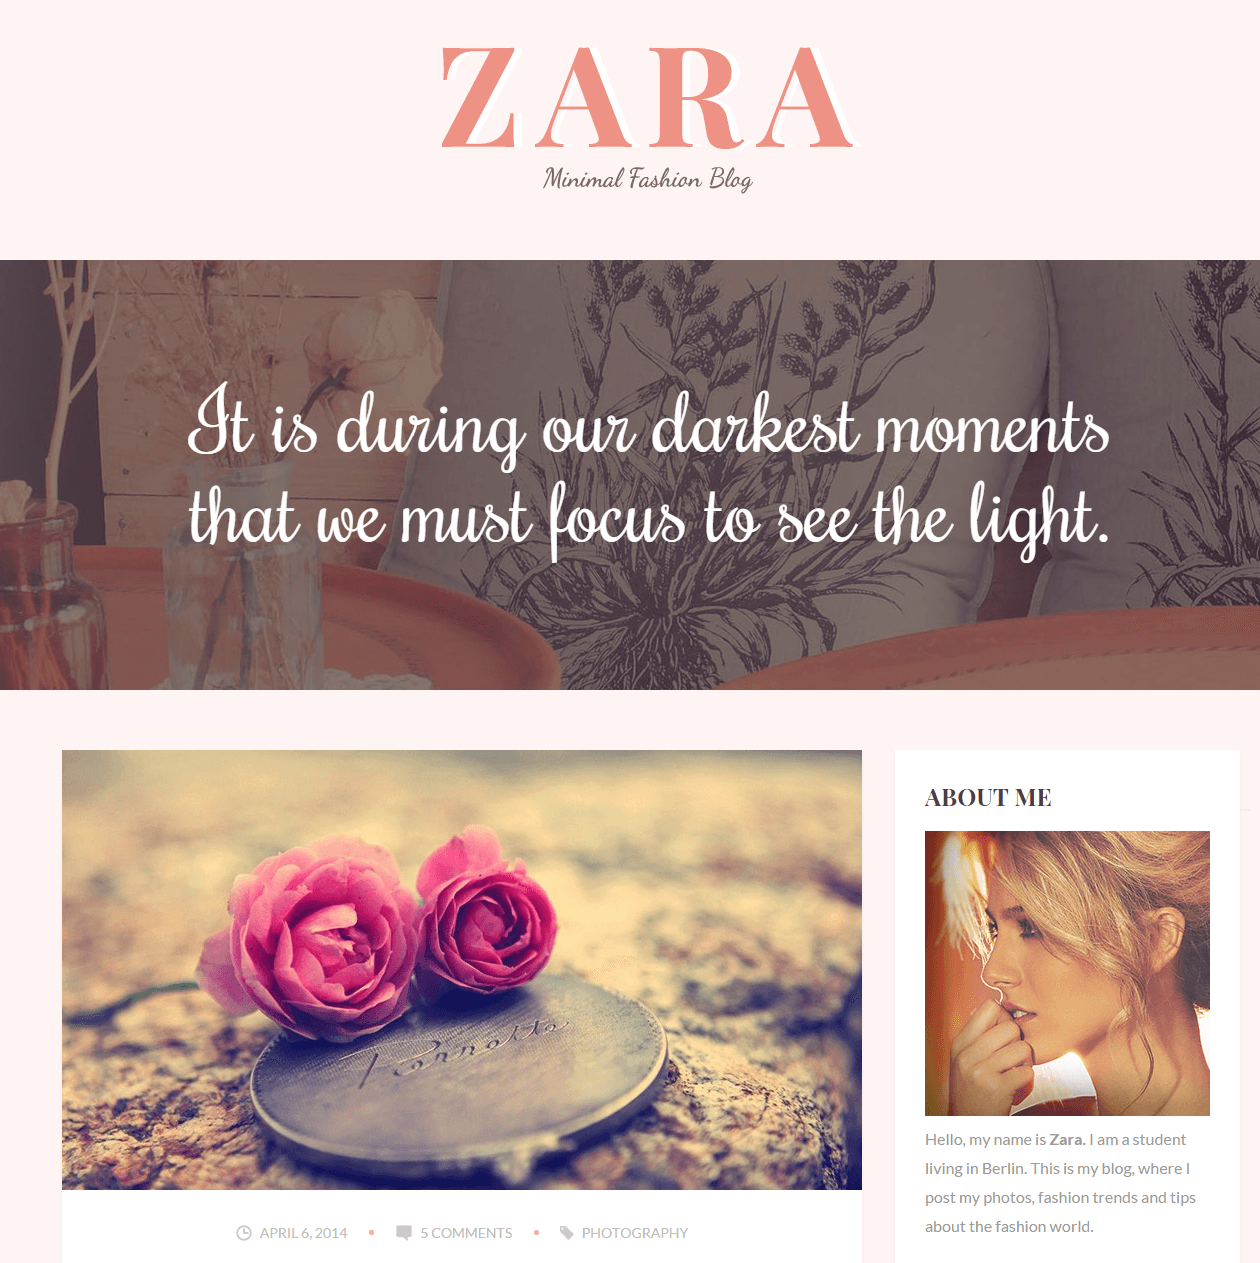 zara fashion blog wordpress theme